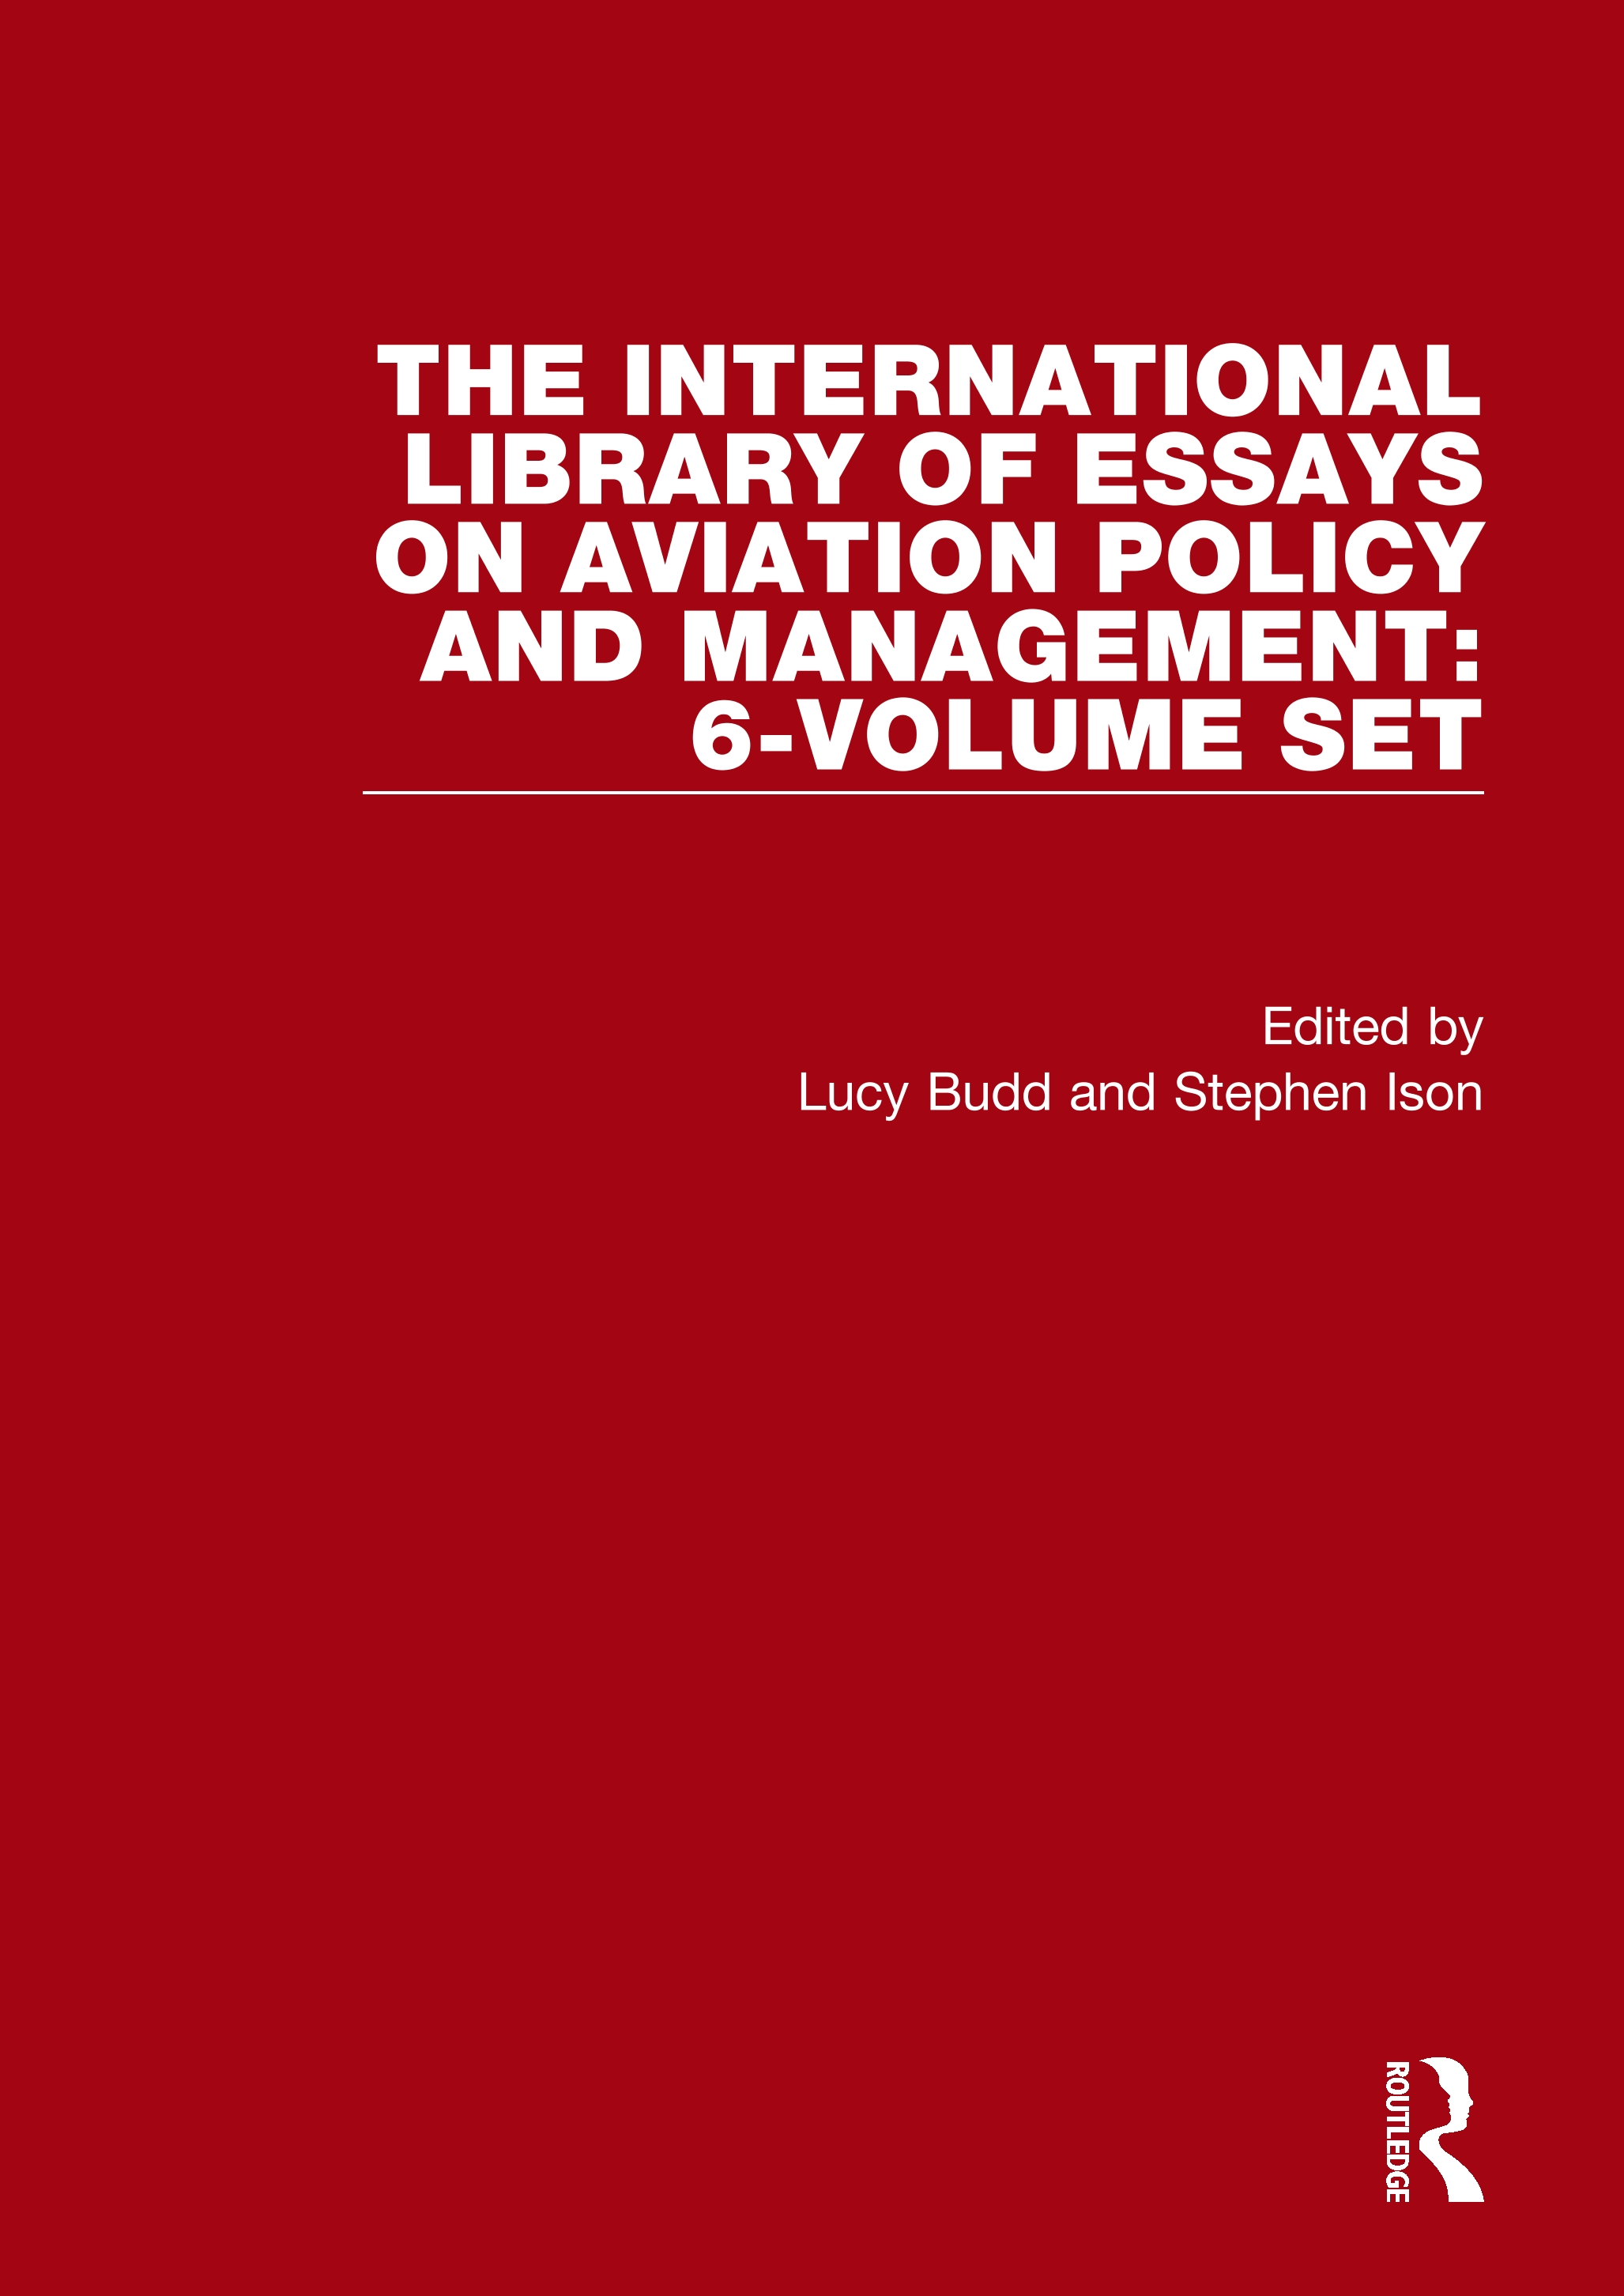 The International Library of Essays on Aviation Policy and Management: 6-Volume Set book cover